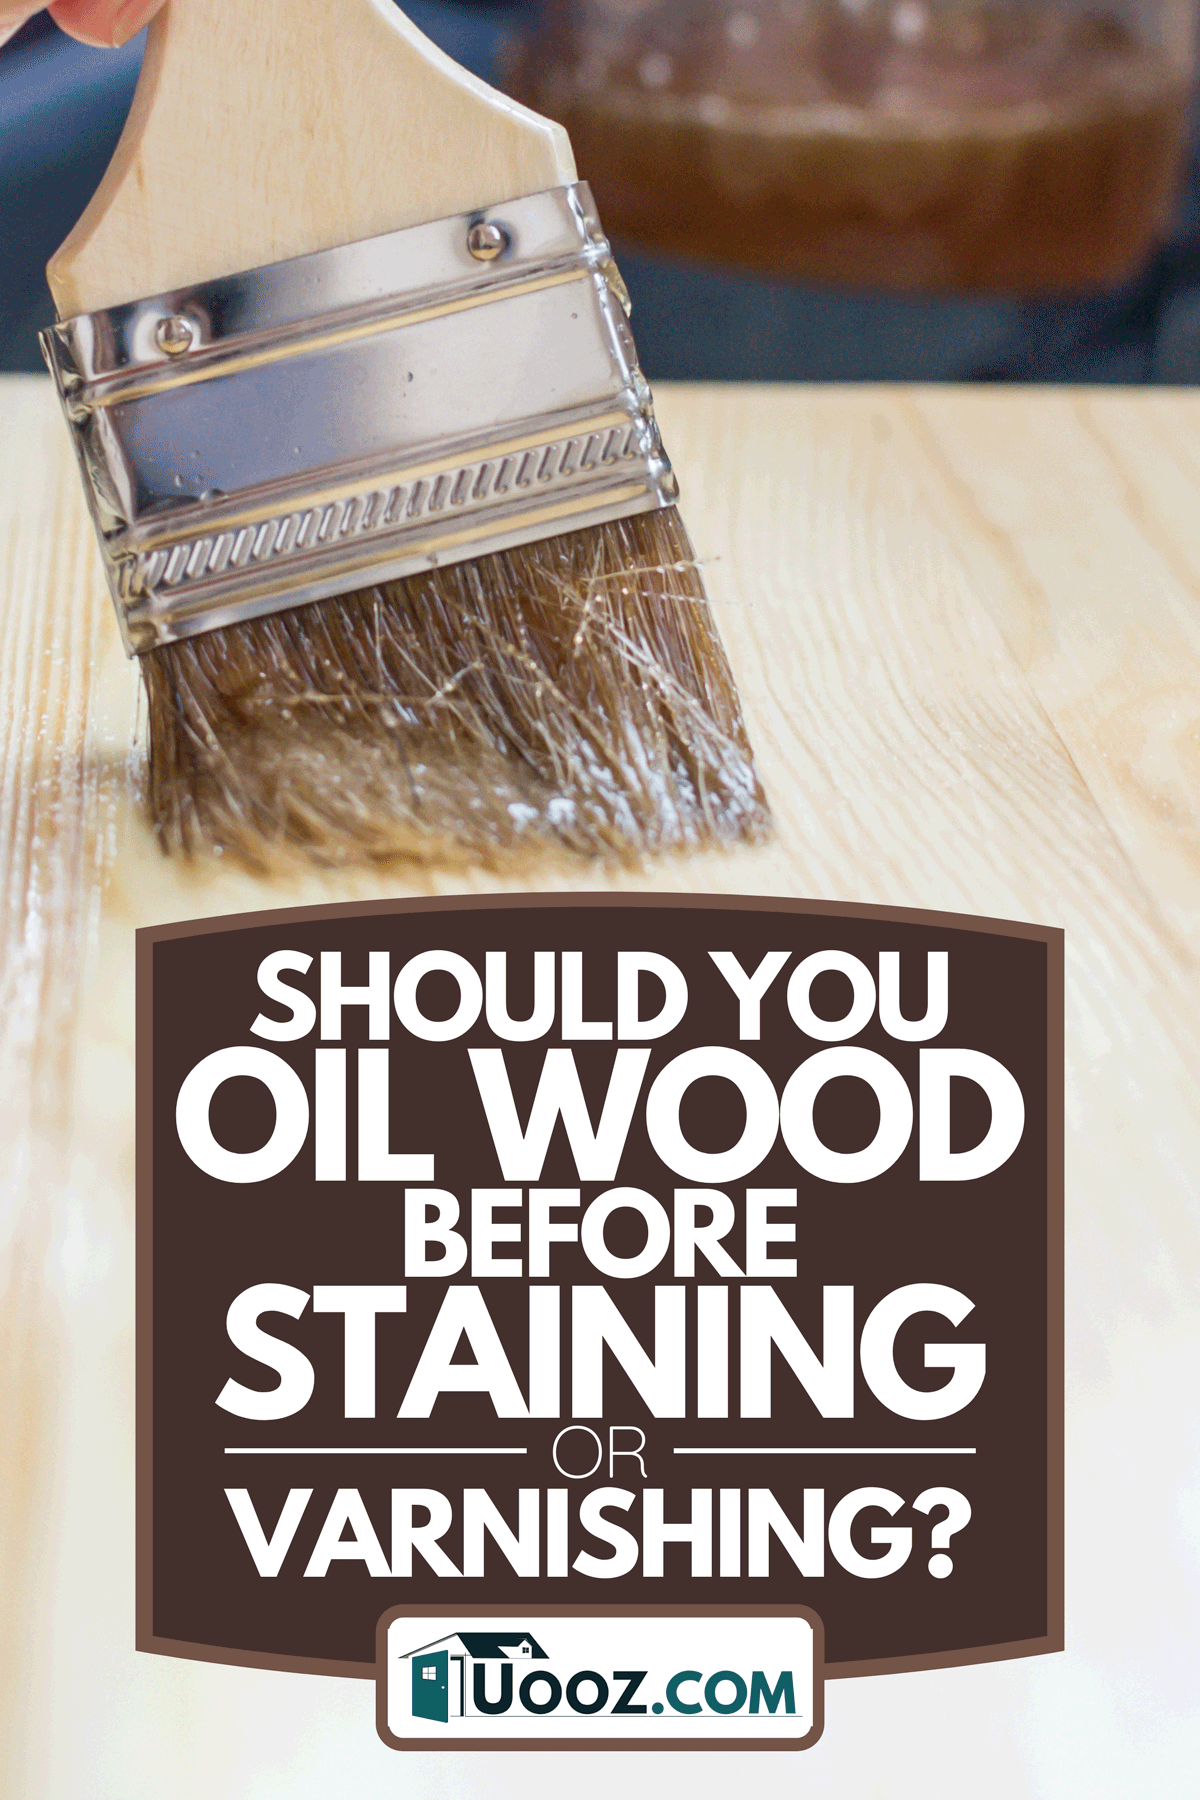 A woman using a paintbrush to paint with varnish on a pine chair or table, Should You Oil Wood Before Staining Or Varnishing?